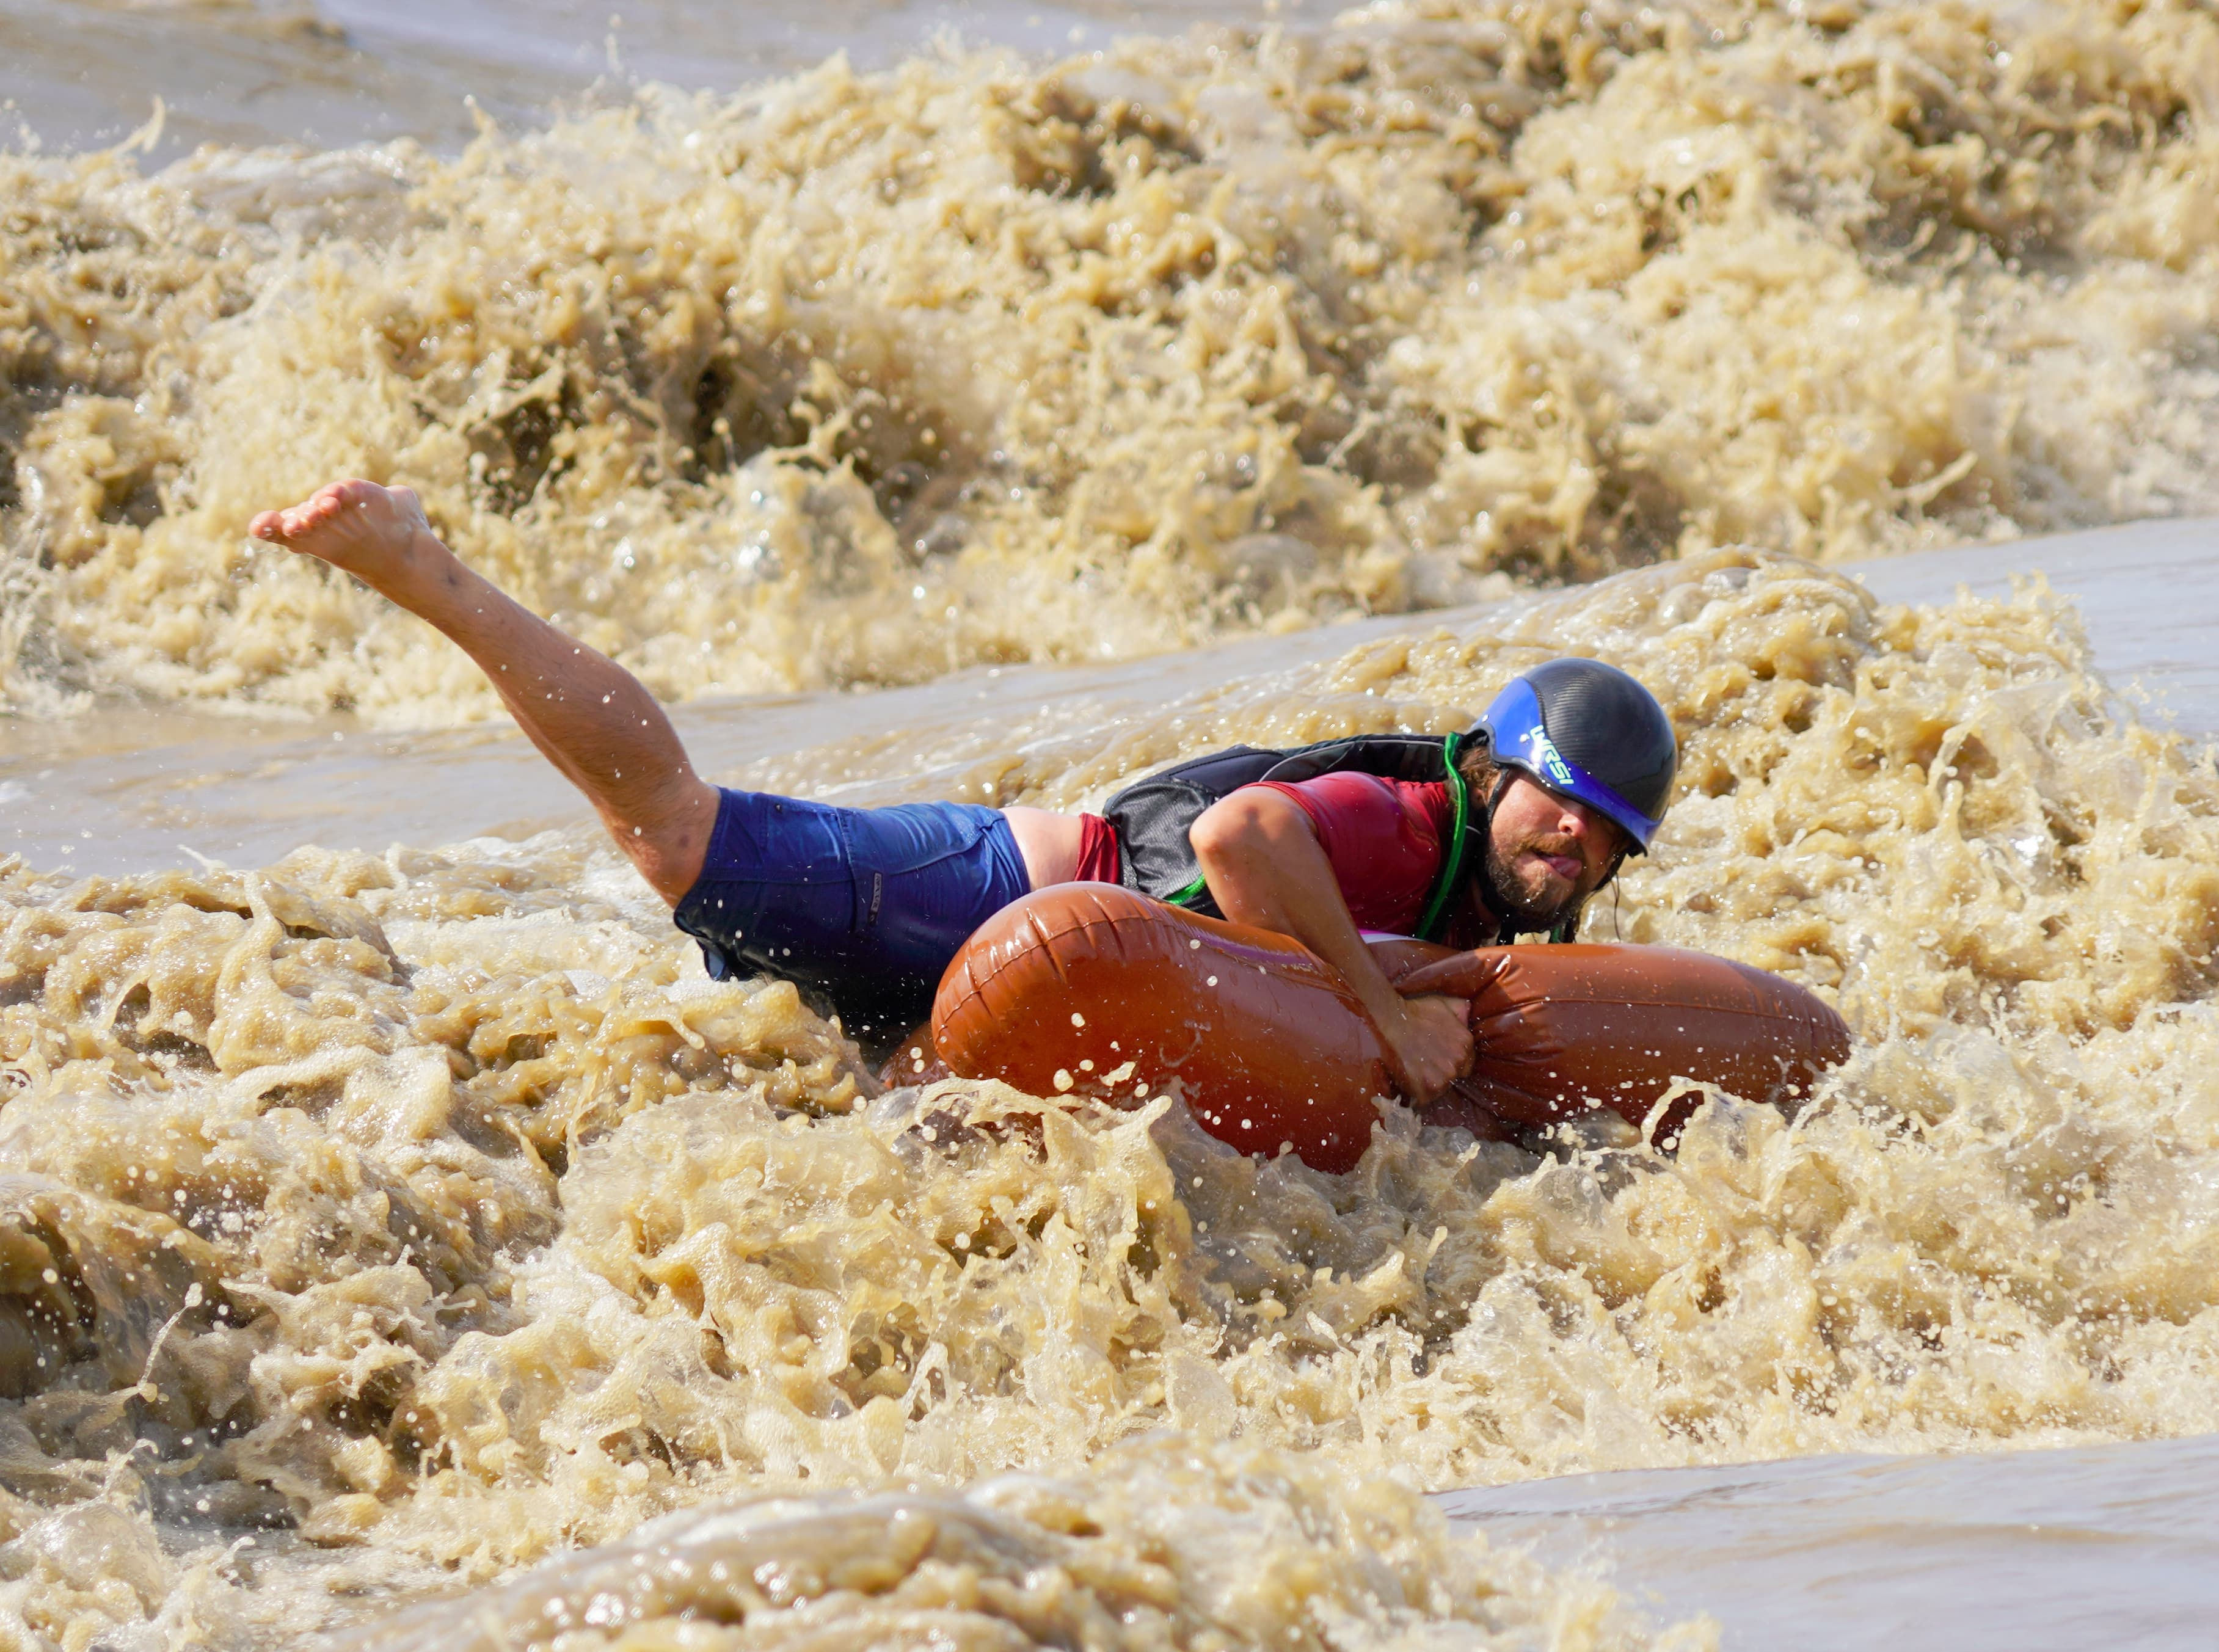 A person is body surfing on an inflatable pool toy.